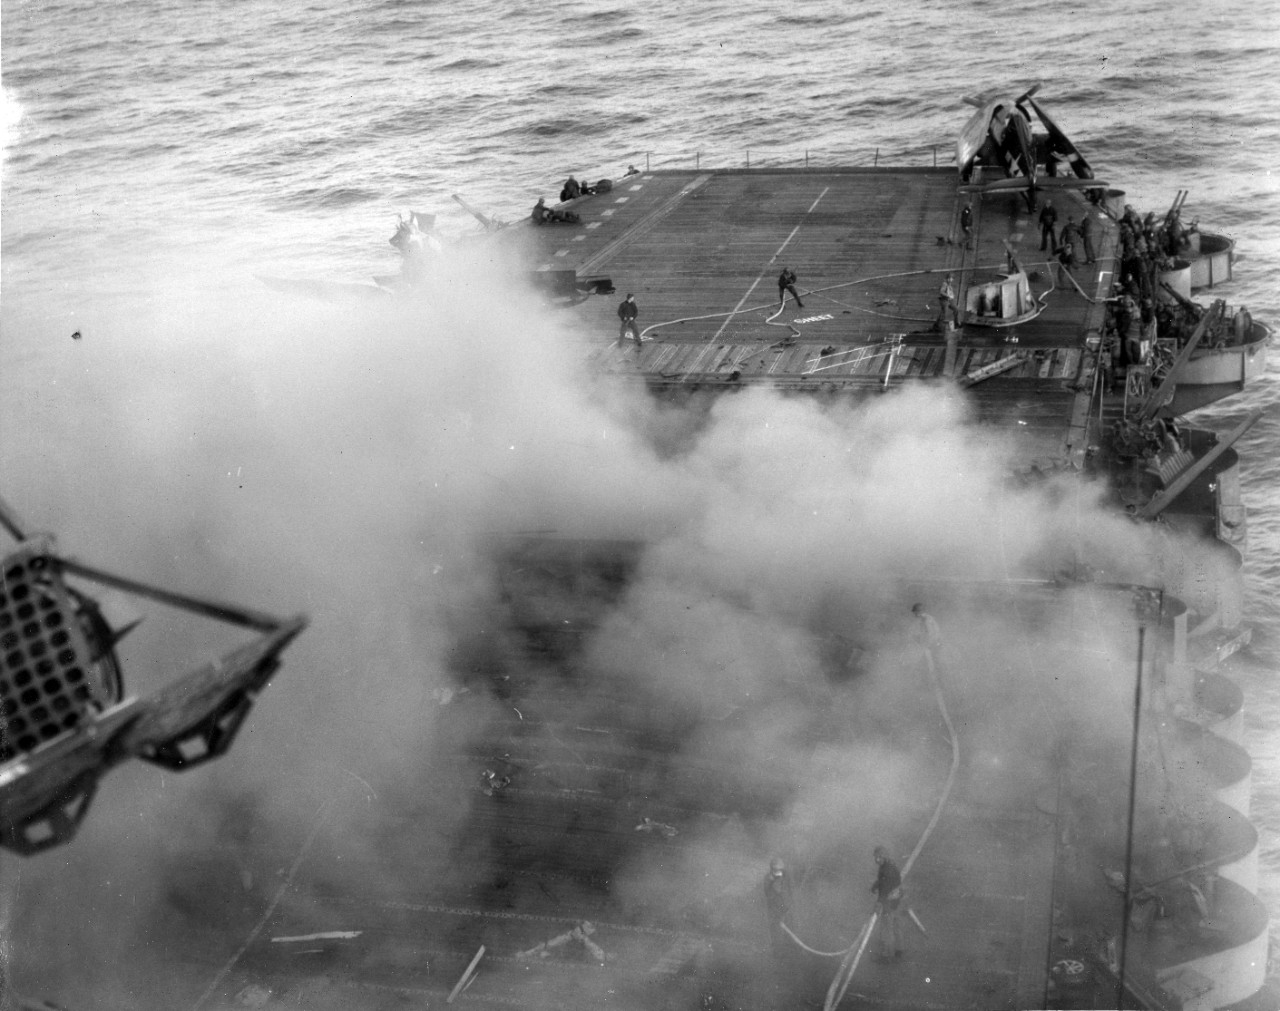 <p>S-100-H.006 ADM Arleigh Burke - Aftermath of kamikaze attack on USS Enterprise (CV 6)</p>